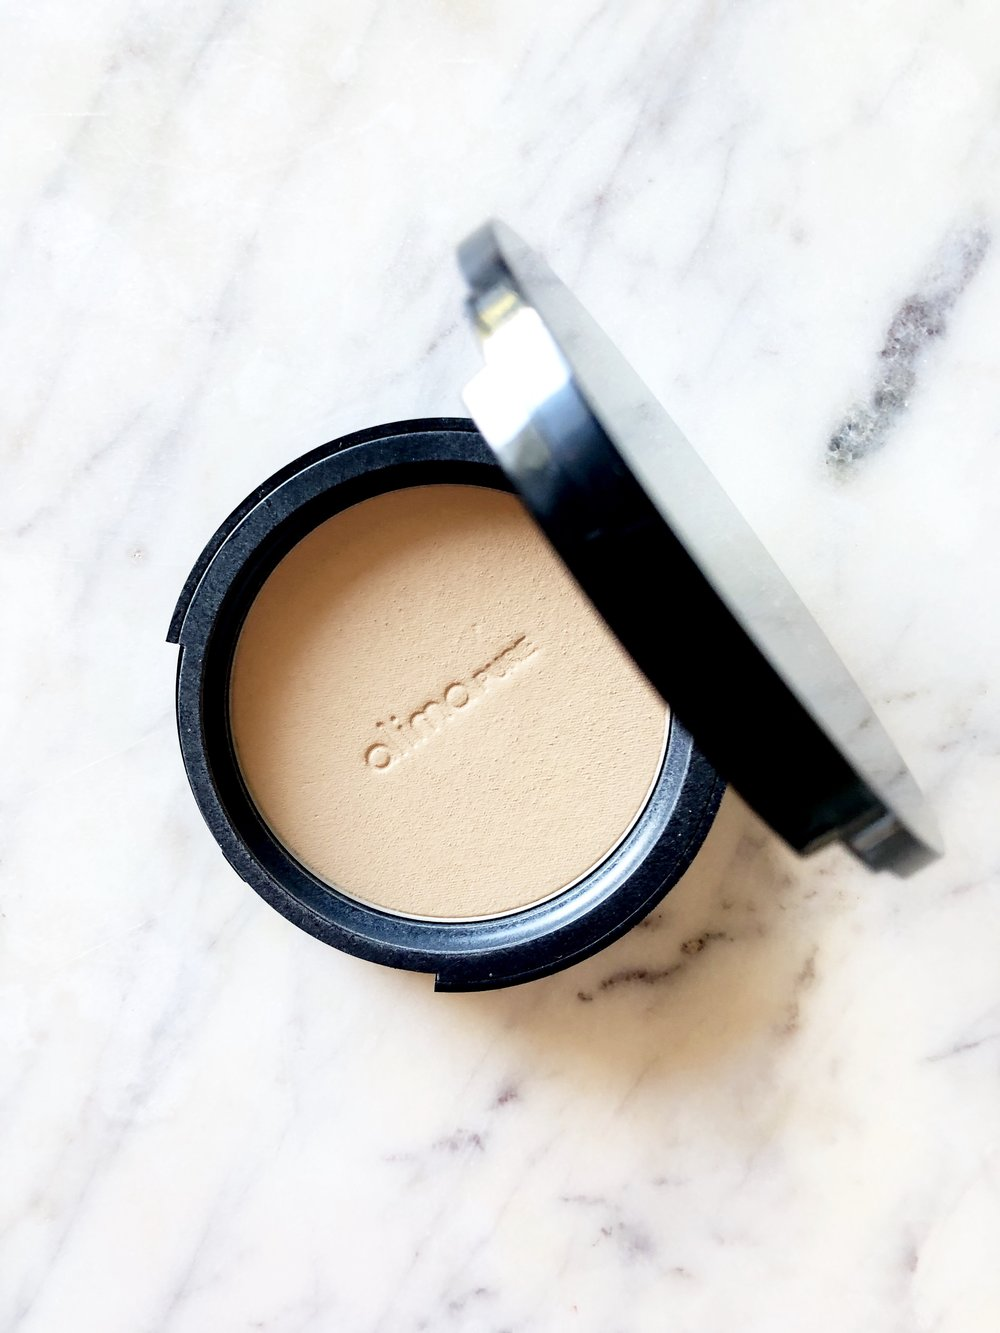 """Alima Pure Pressed Foundation- $34 - Here's the quick SCORECARD breakdown. Each question is rated on a scale of 1 to 5, 5 being the best:1. How do the ingredients look on EWG.org?- 2: This boils down to not receiving a fully transparent answer from the brand. Just """"essential oils.""""2. How is coverage?- 4: It's really such a great level of coverage. Very lightweight, but evens out really well.3. Does it last?- 4100% yes. It sticks around all day.4. Is it non-irritating?- 5: No breakouts after using it for a couple of weeks!5. Does it blend and build?- 5: Yes, it blends well with everything I've paired it with from primers to highlighters.6. How's the shade range?- 4: 12 shades, primarily on the lighter side. Room to grow!7. How conscious is the brand? Cruelty free, sustainable, etc.- 4: Cruelty free, carbon neutral as a company, and they have refillable compacts!FINAL SCORE:28/35"""